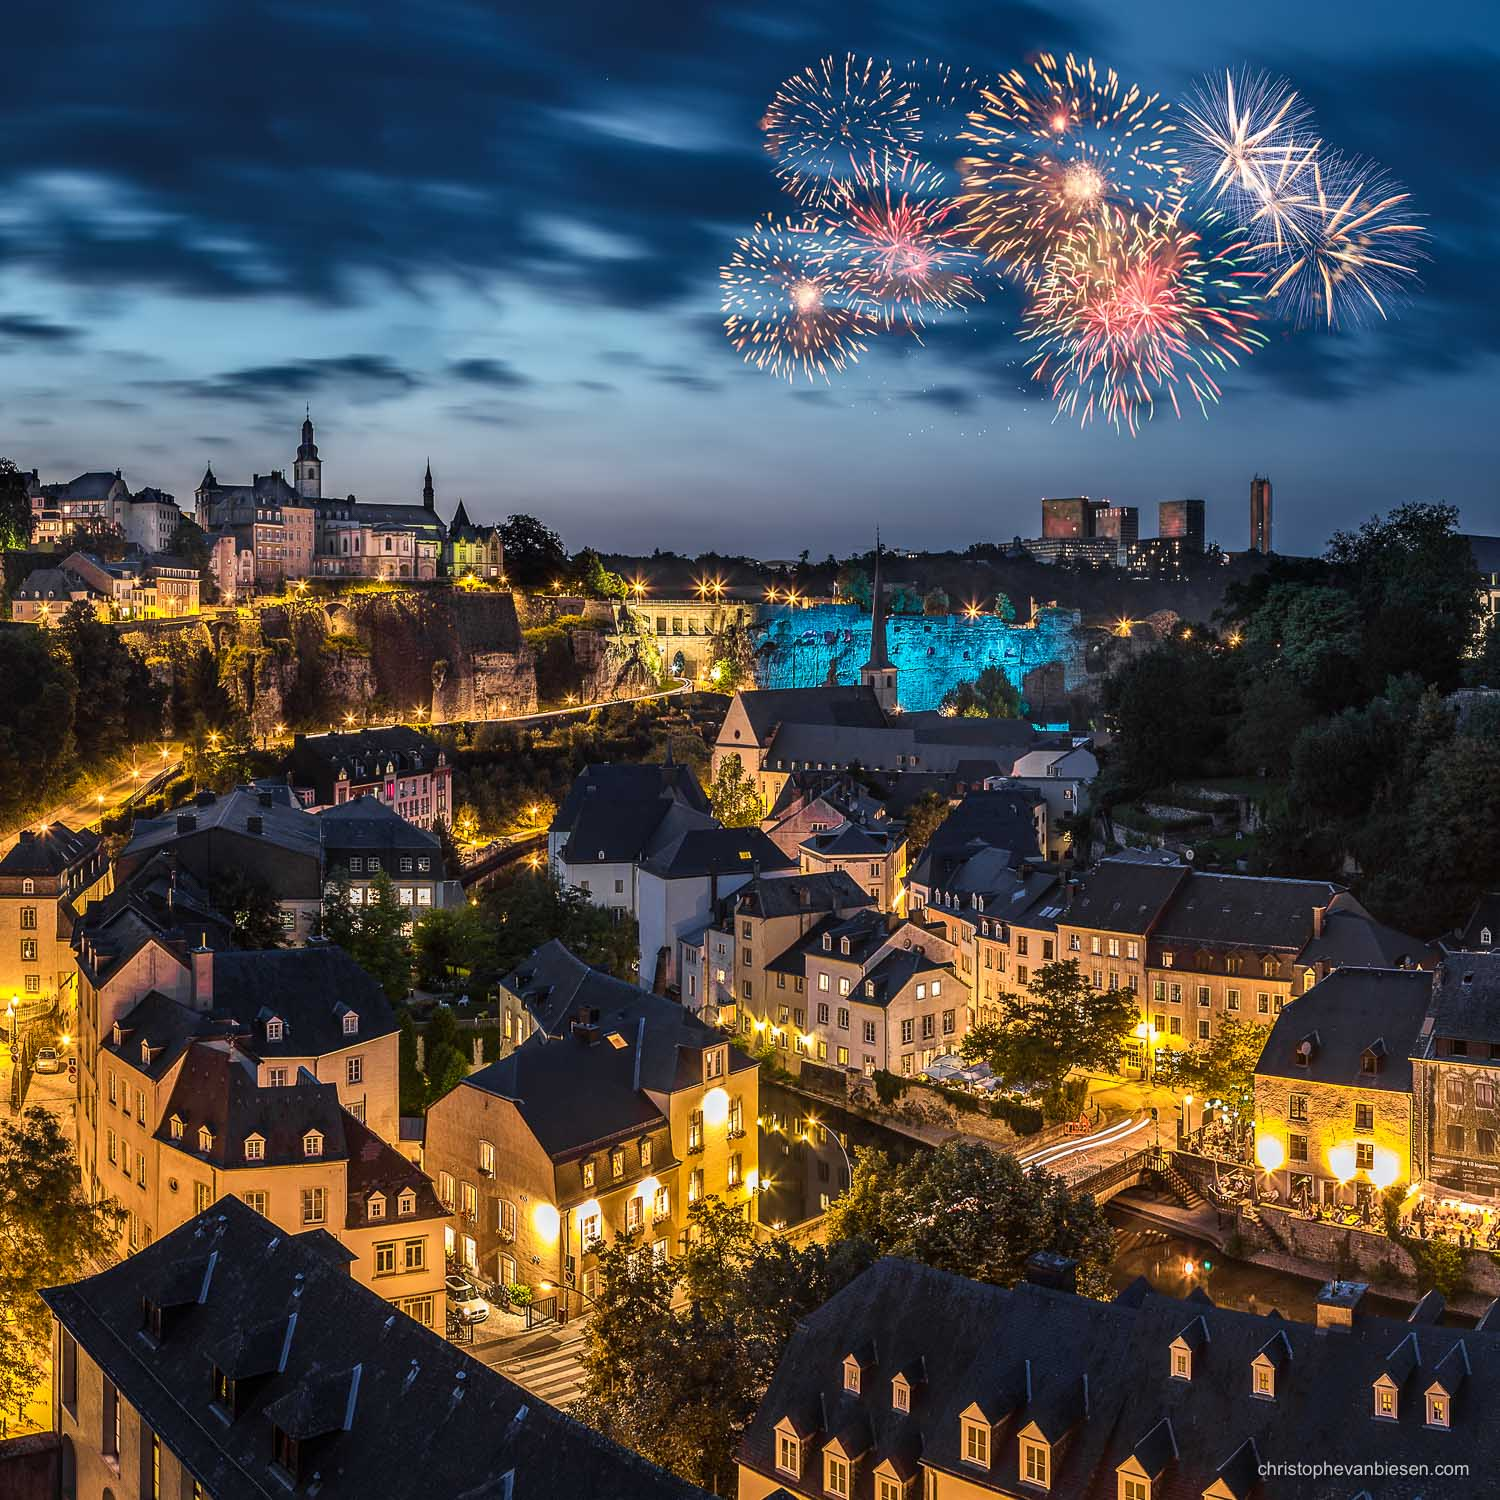 Luxembourg City - Fireworks over Luxembourg City during the country's Naional Holiday taking place on the eve of the 23rd June - Rain and Fire